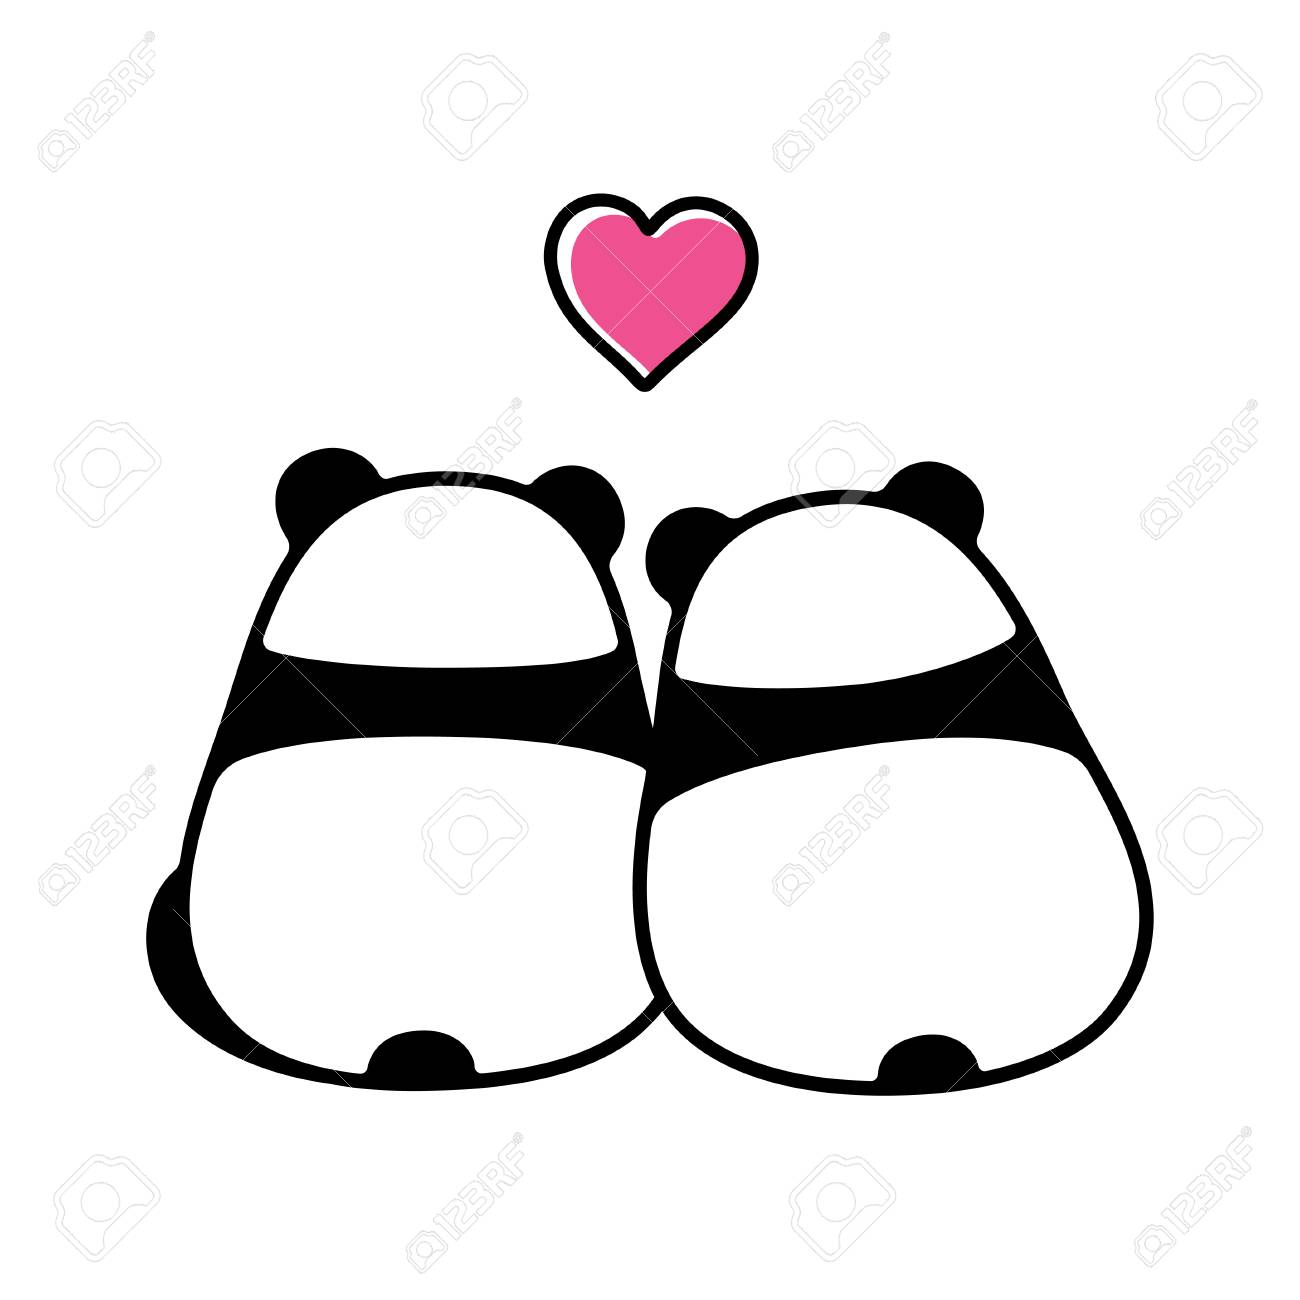 Cute panda couple in love simple and minimal cartoon drawing back view from behind